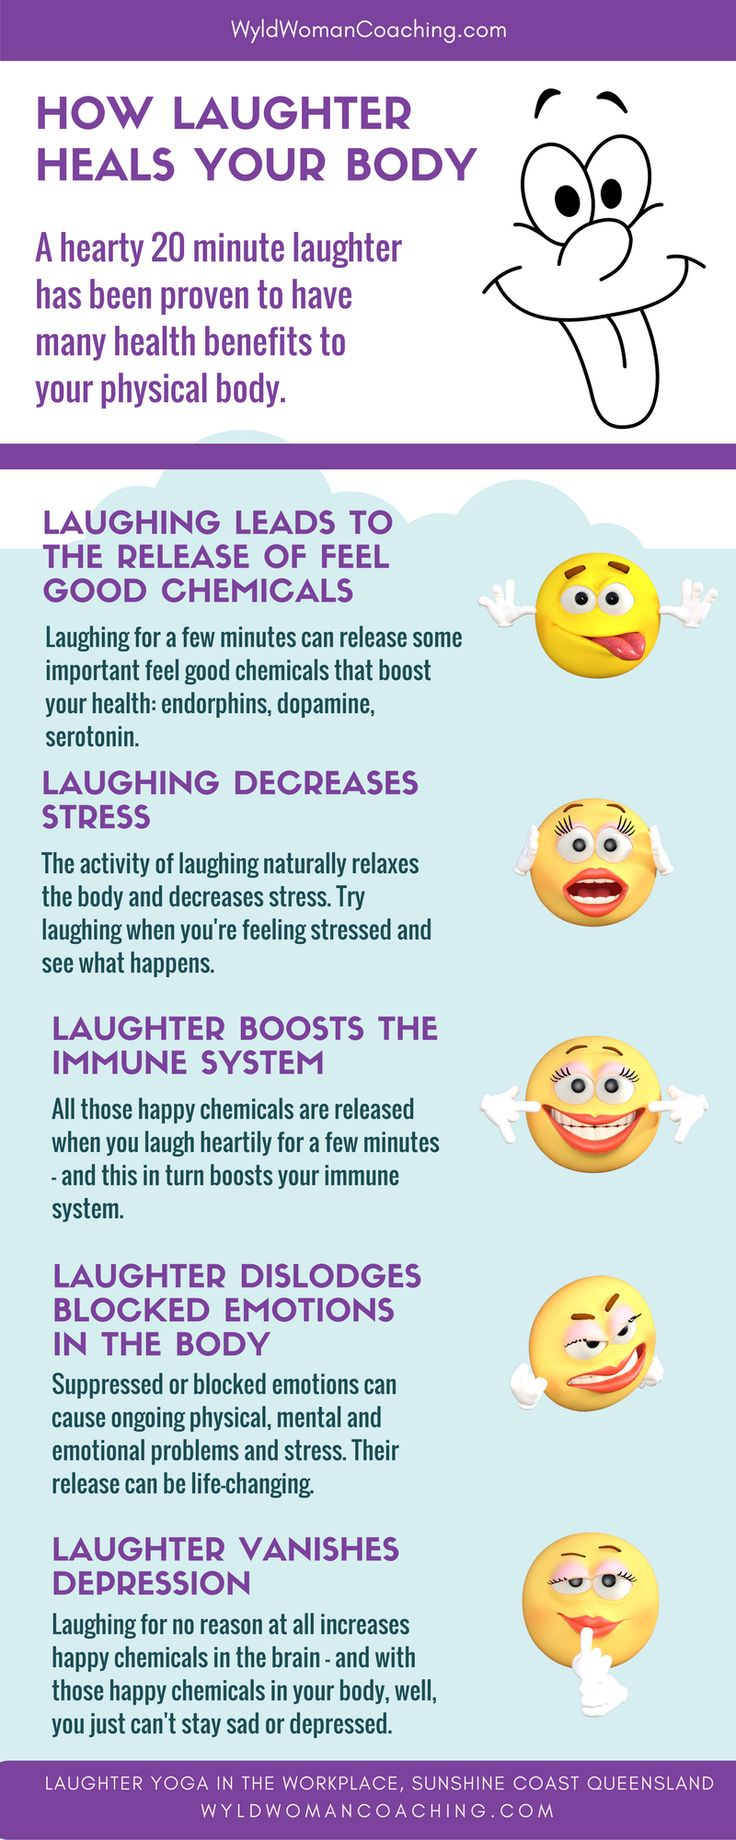 How laughter heals your body. #laughteryoga #positivity #wyldwoman